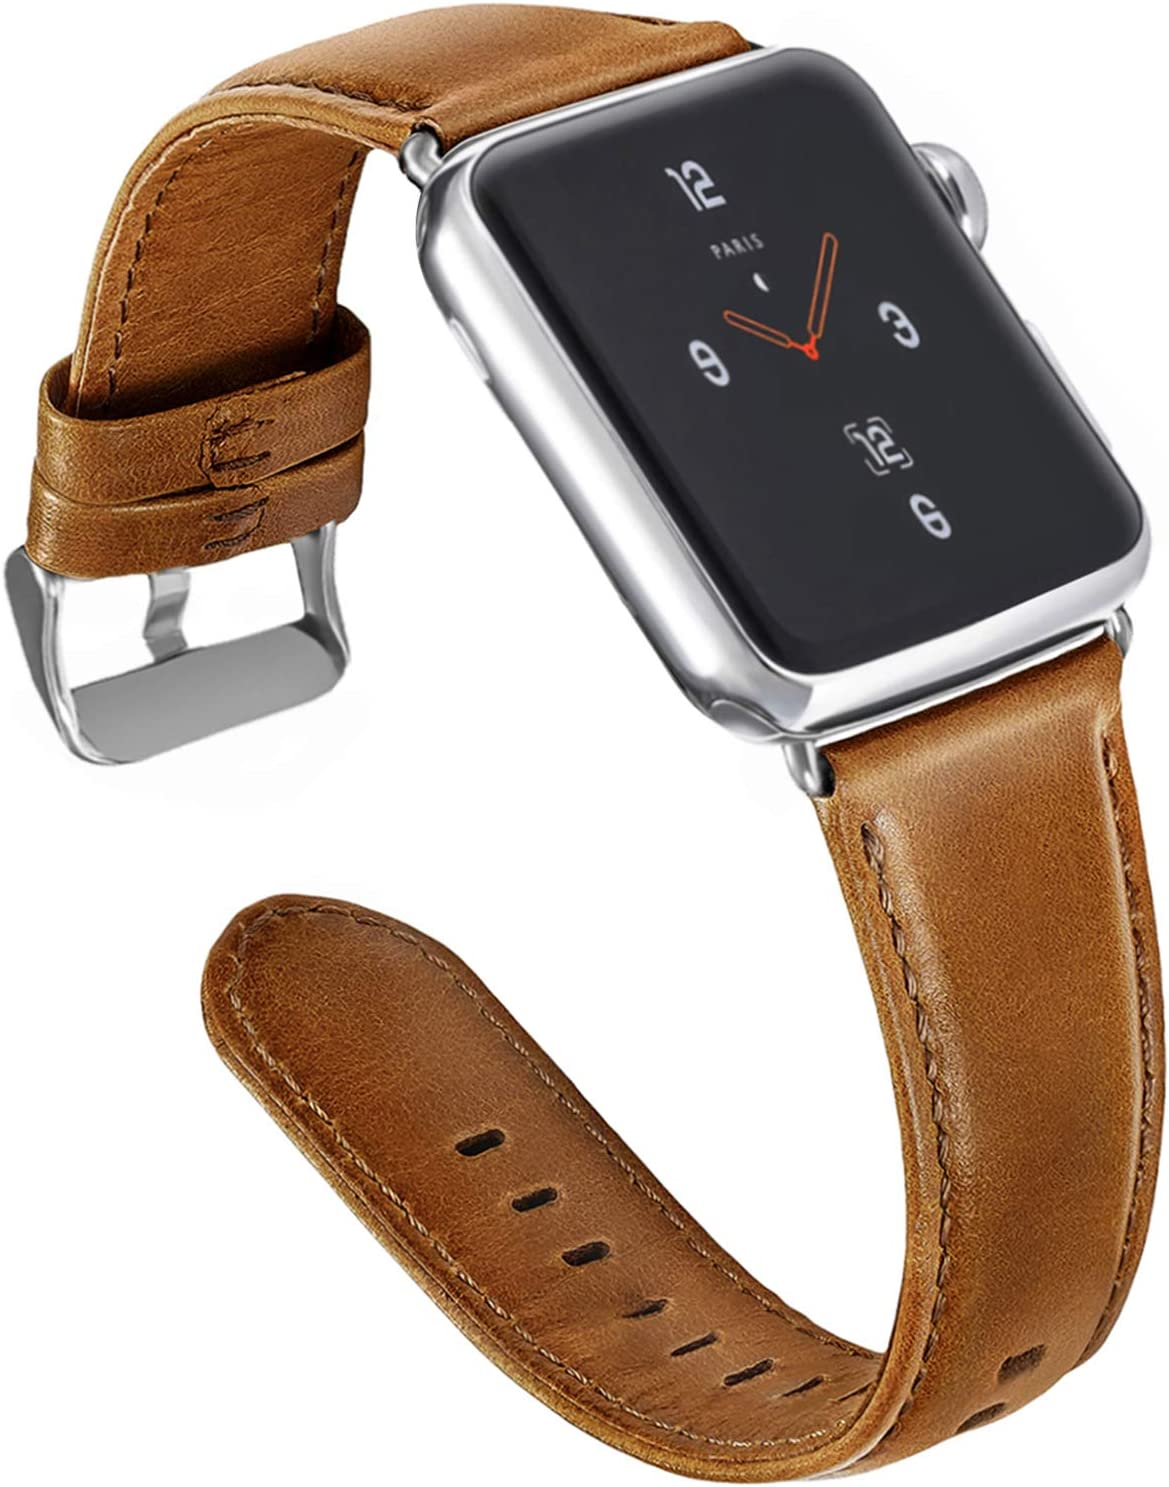 ALADRS Genuine Leather Watch Straps Compatible with Apple Watch Band 42mm 44mm, Wristbands Replacement for iWatch Series 6 5 4, SE (44mm) Series 3 2 1 (42mm), Brown